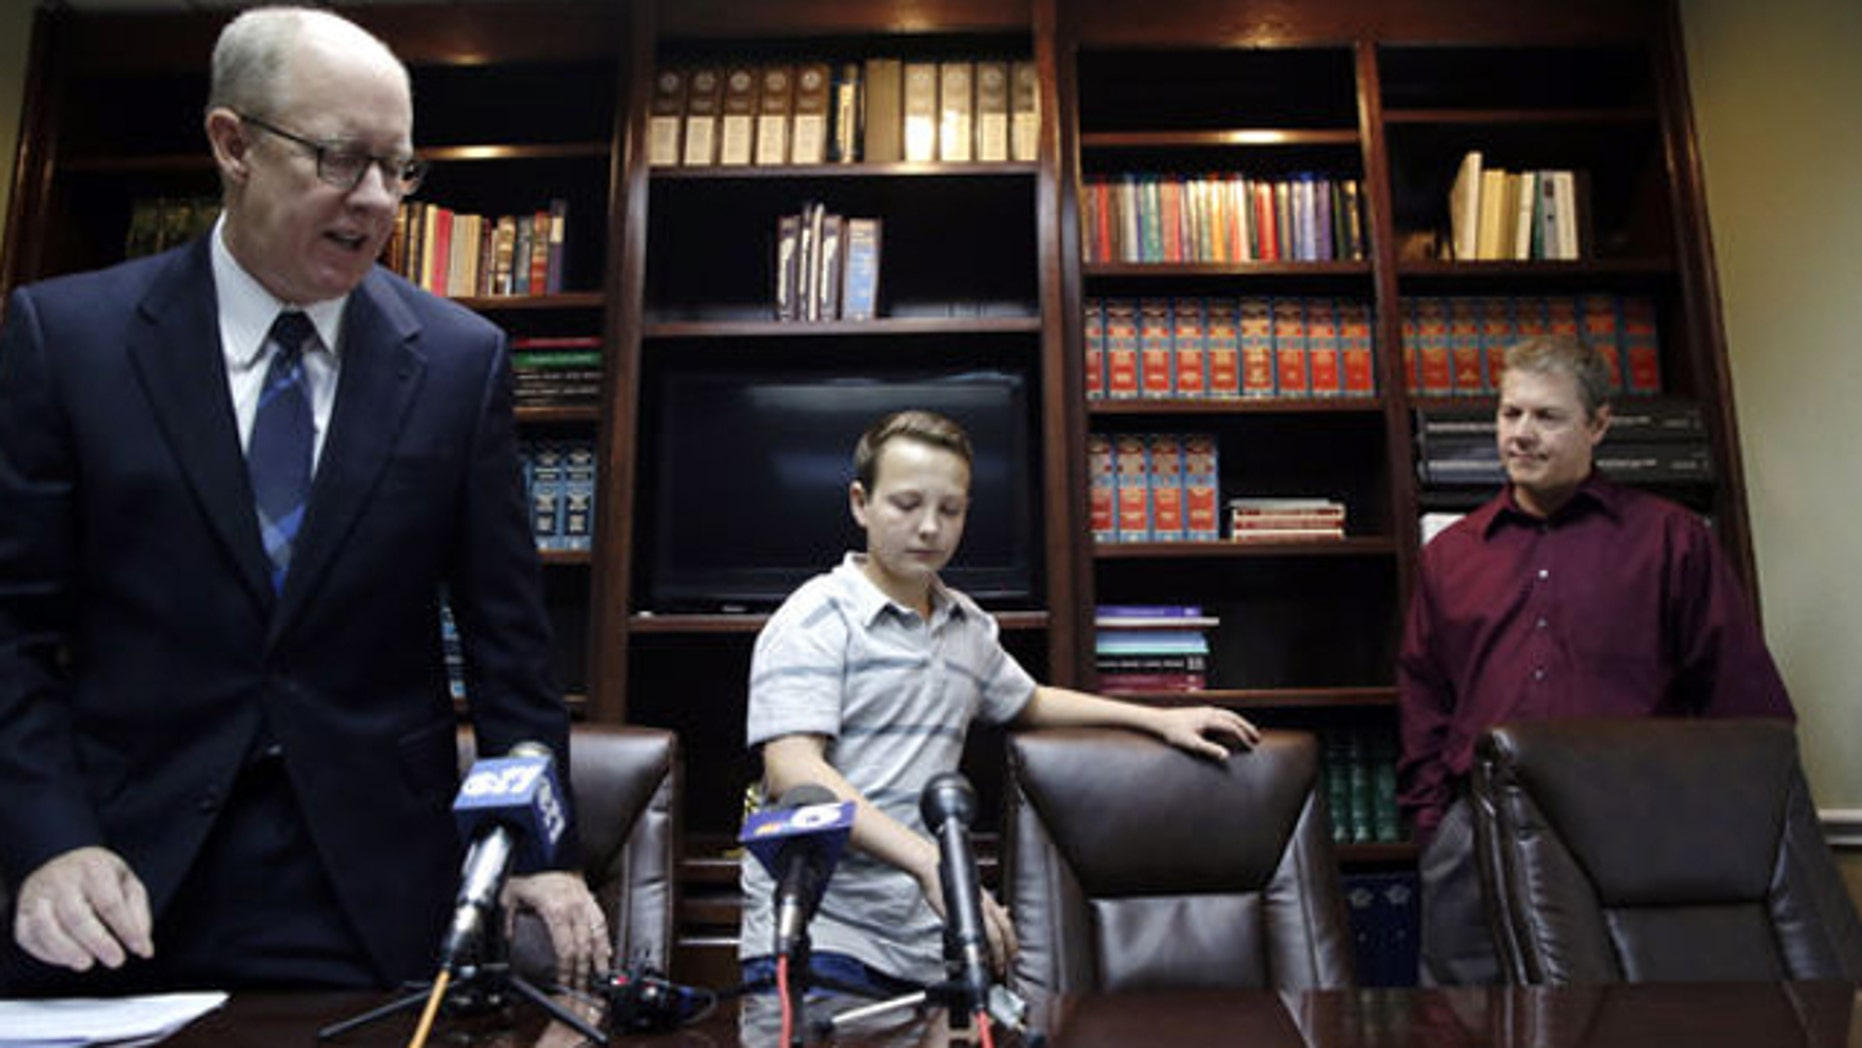 March 26, 2014: Lucas McConnell, 13, center, takes a seat before speaking to reporters with his attorney Todd Clement, left, and his father Kevin McConnell by his side in Burleson, Texas.